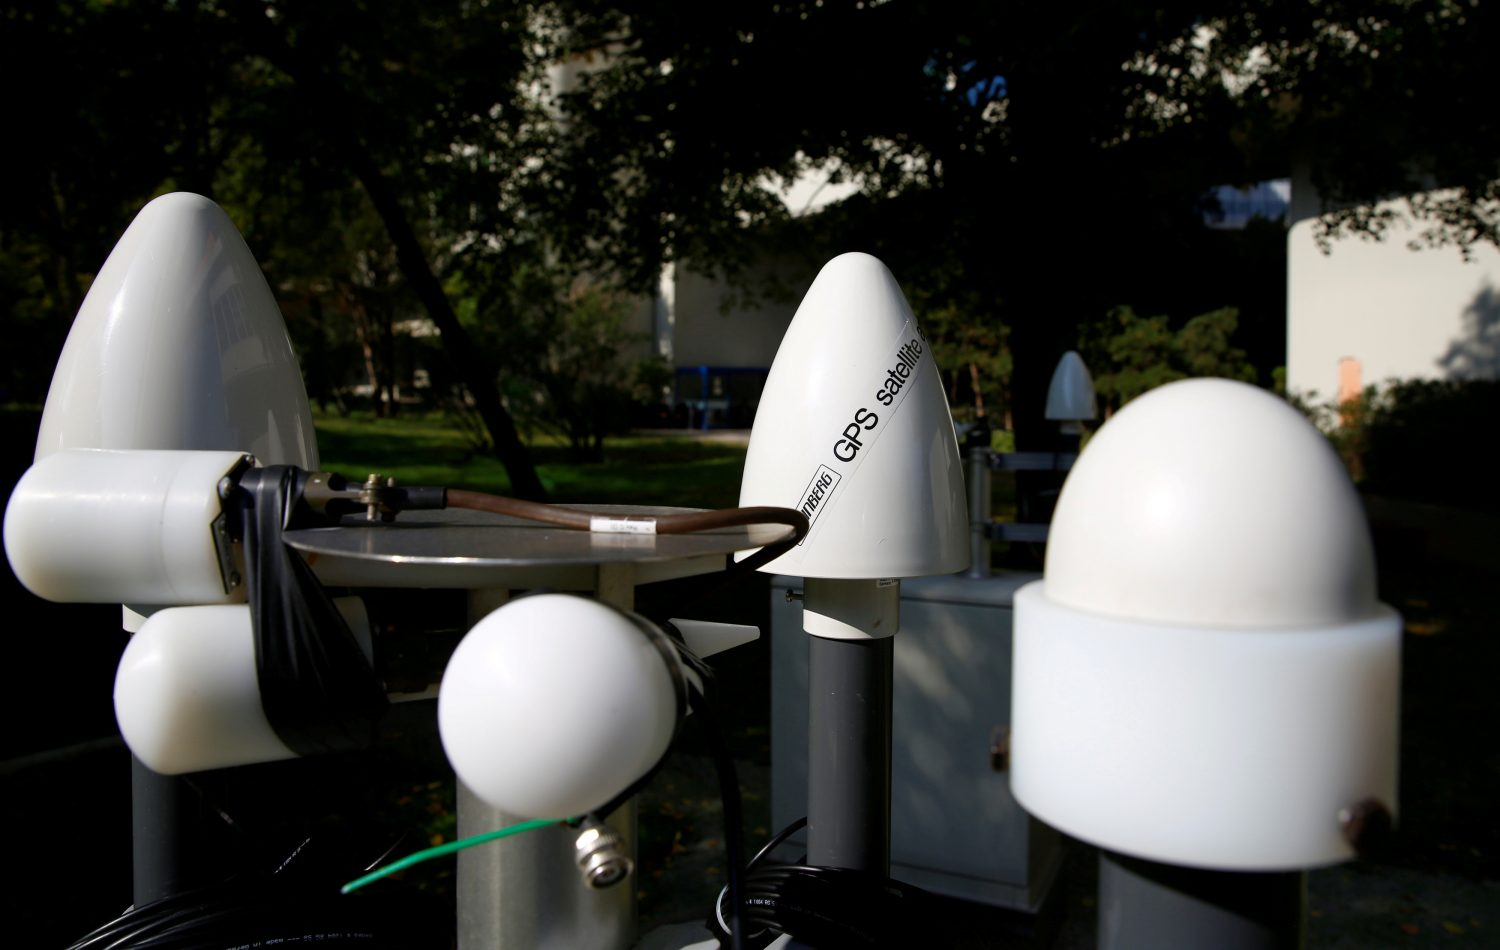 FILE PHOTO: Antennas of a testing facility for seismic and infrasound technologies of the Comprehensive Nuclear-Test-Ban Treaty Organization (CTBTO) are shown in the garden of their headquarters in Vienna, Austria, September 28, 2017. REUTERS/Leonhard Foeger